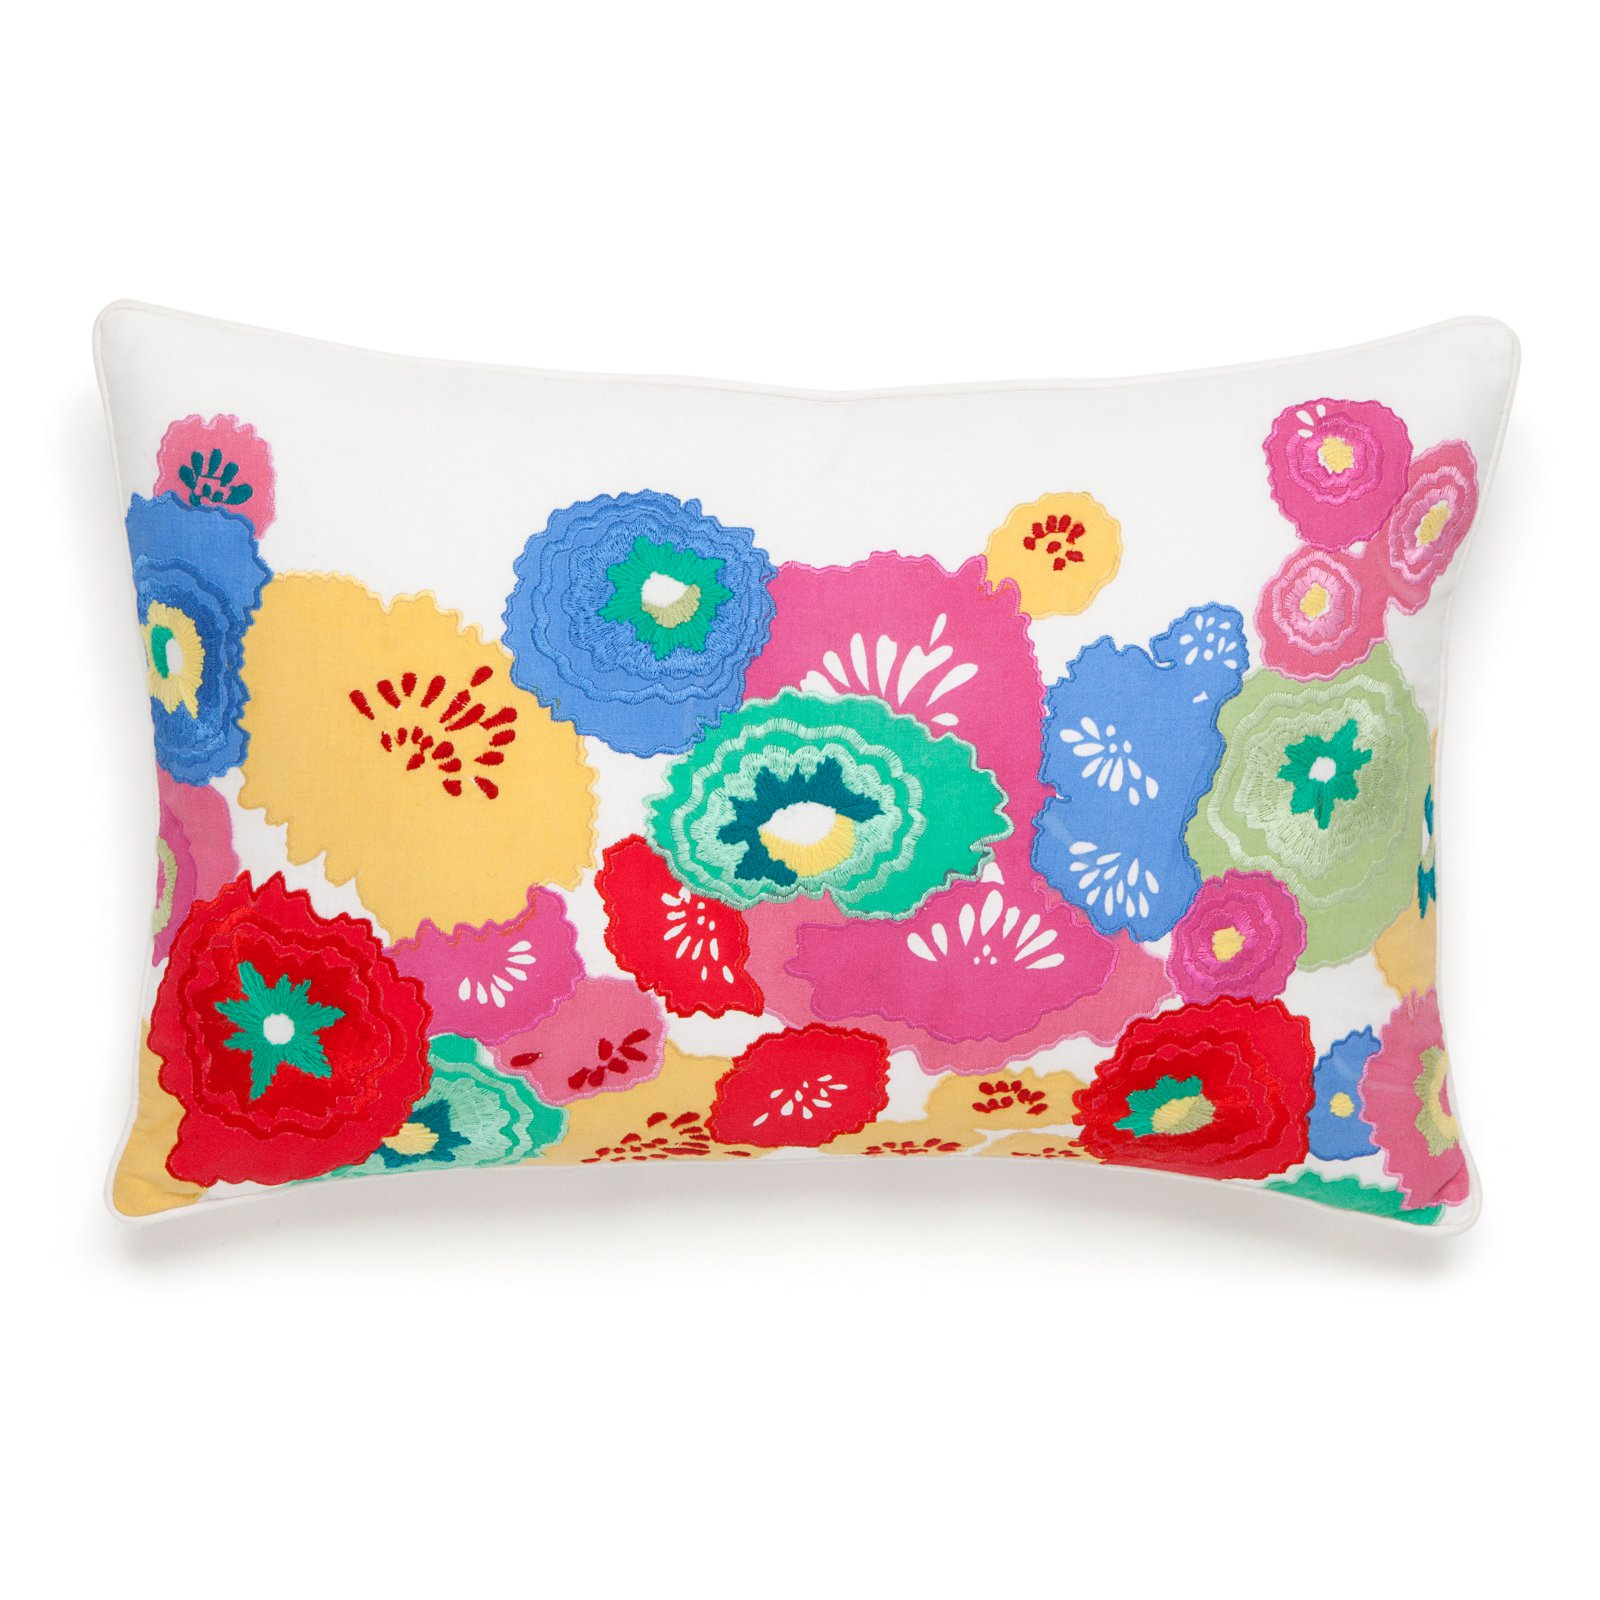 Collier Campbell English Bloom Decorative Pillow